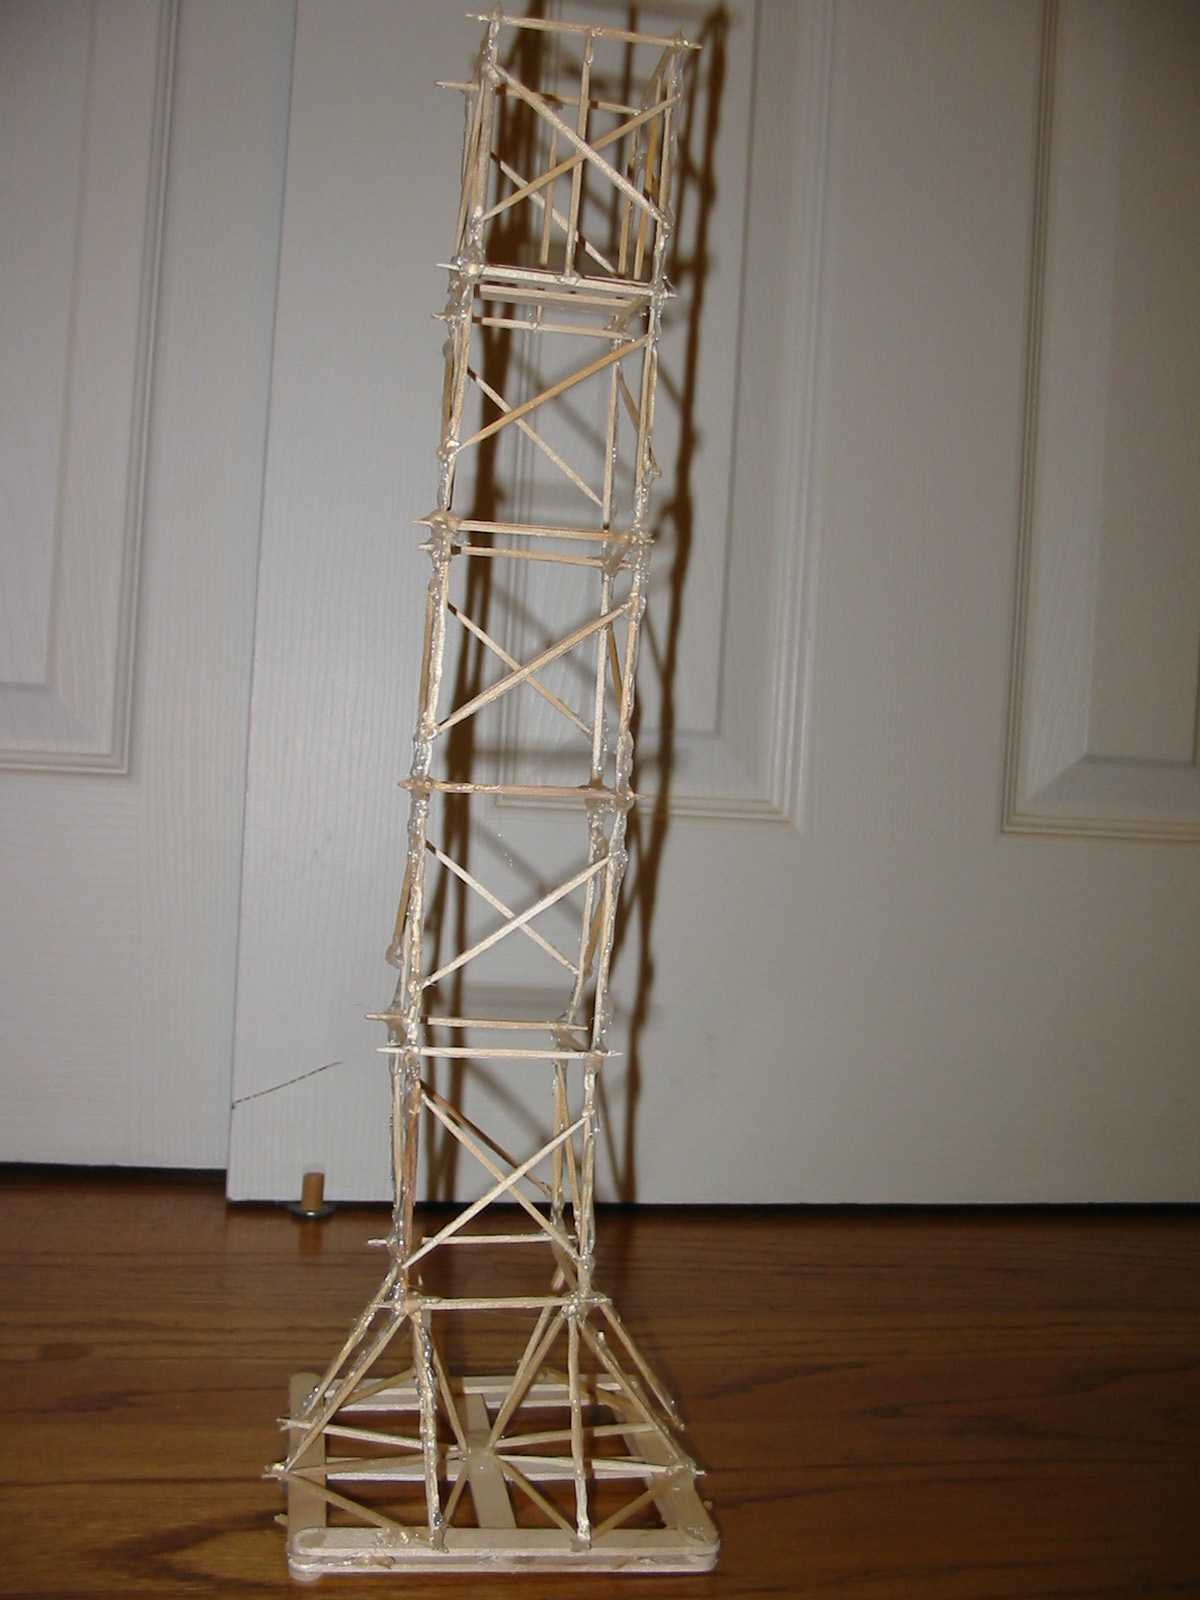 Eiffel Tower Made Of Popsicle Sticks